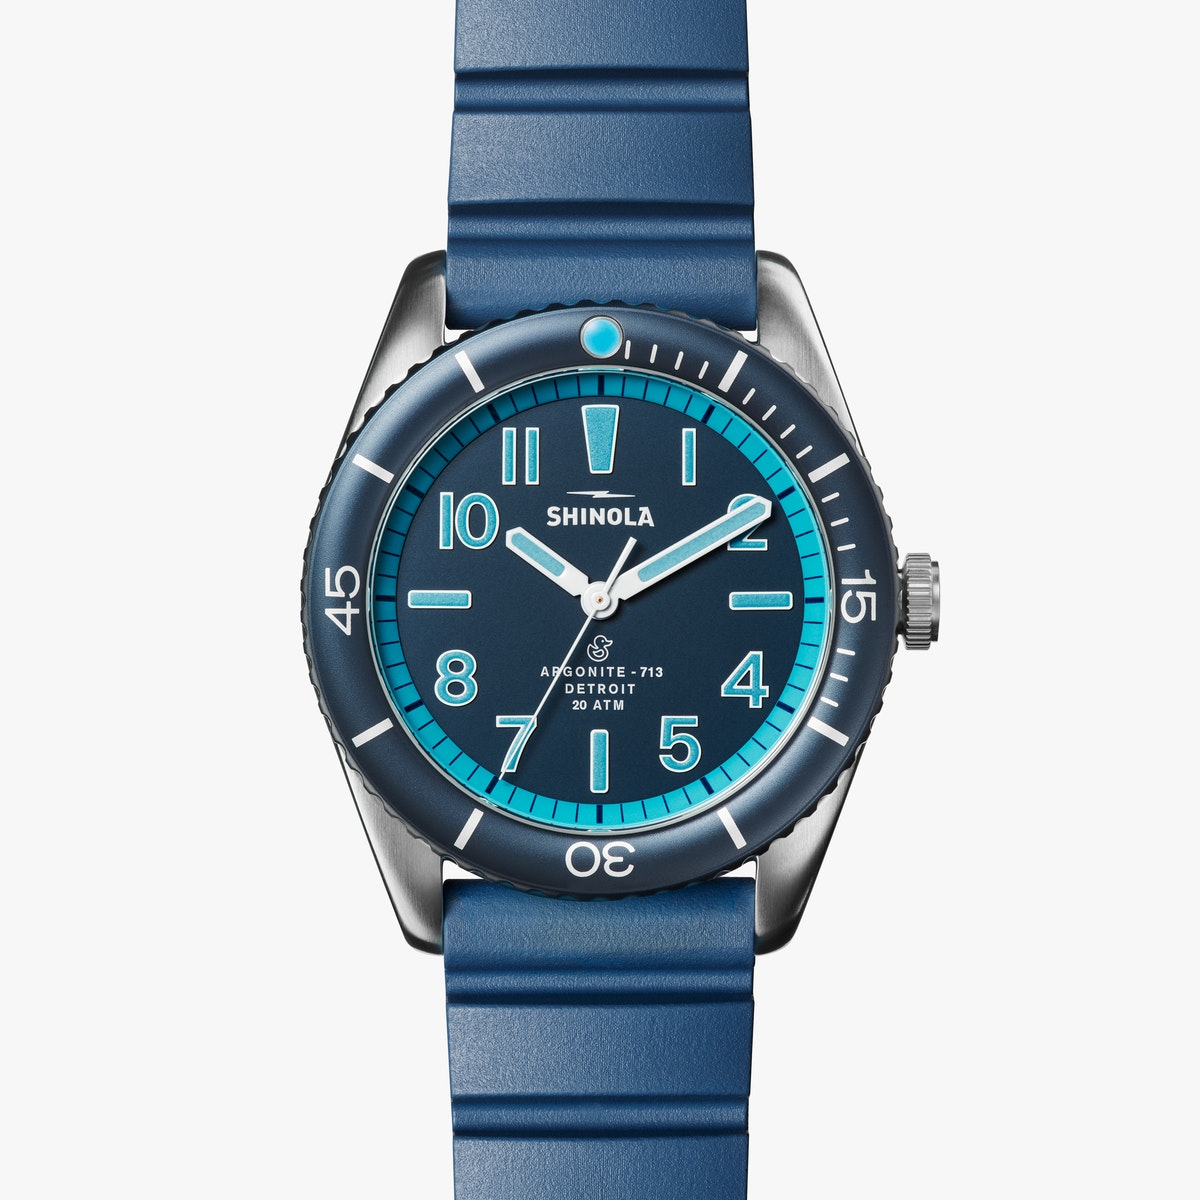 Shinola 'The Duck' 42mm Watch in Bay Blue